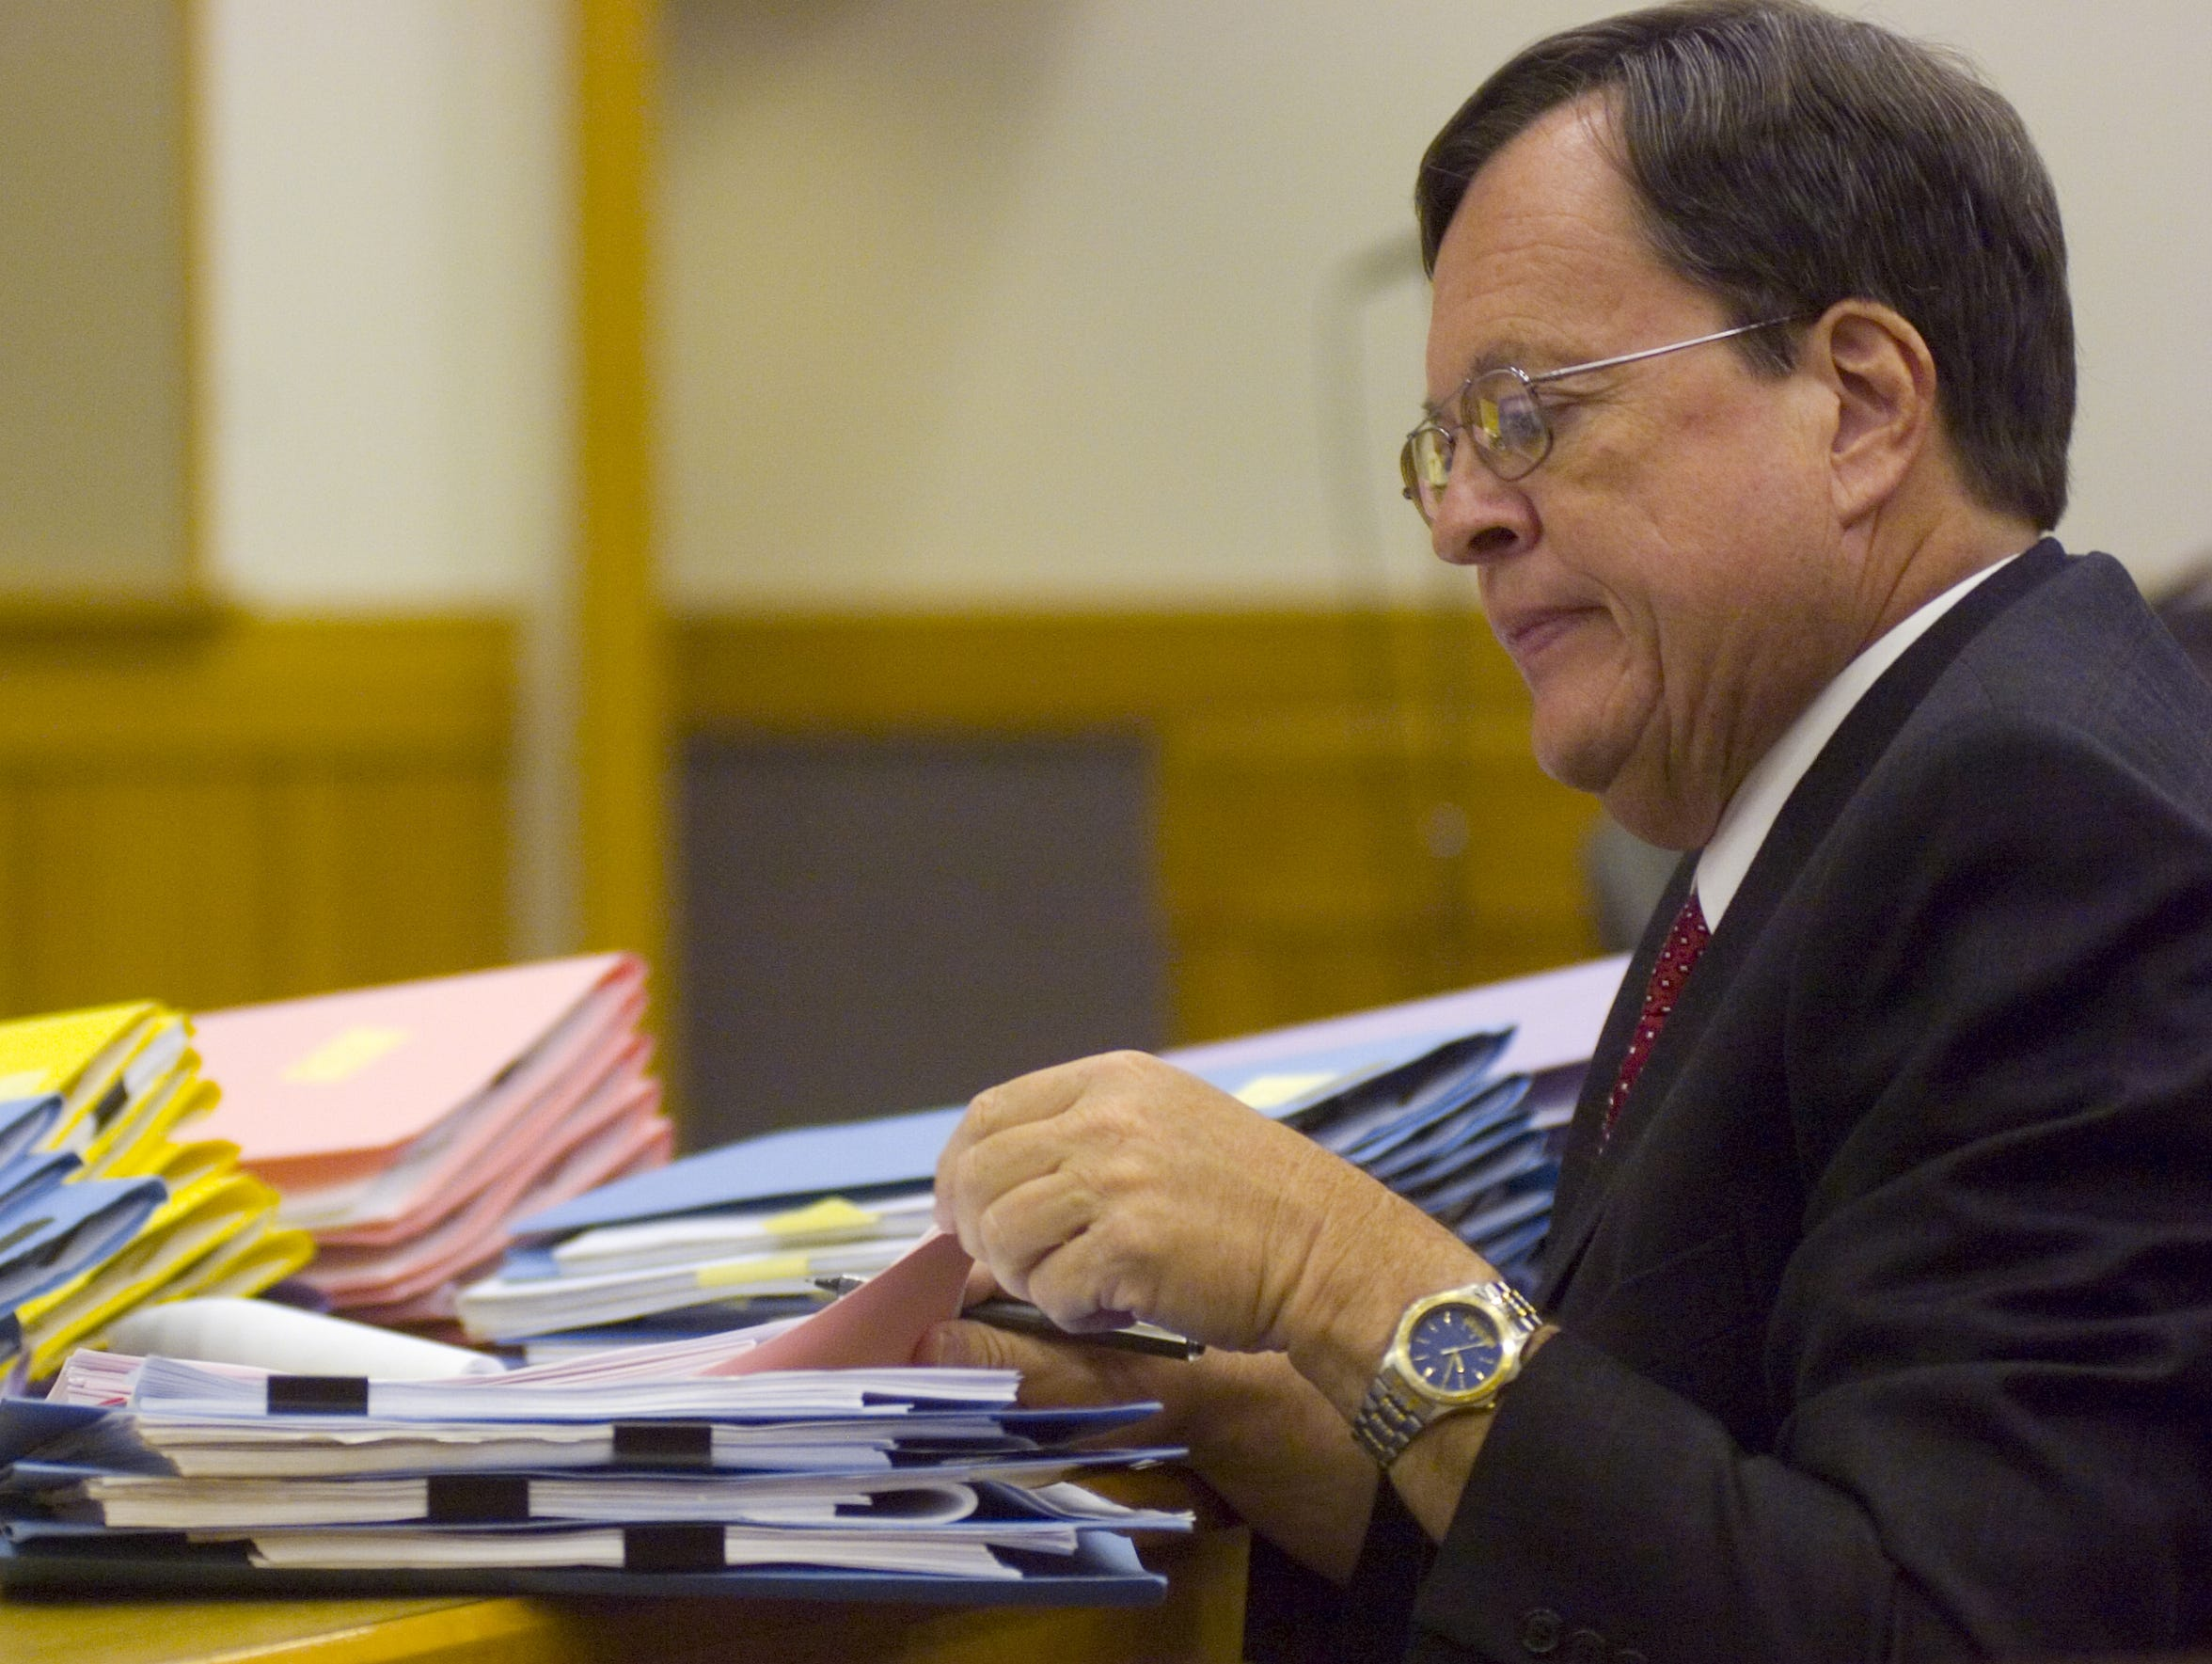 Attorney Robert Hill sorts foreclosure files during